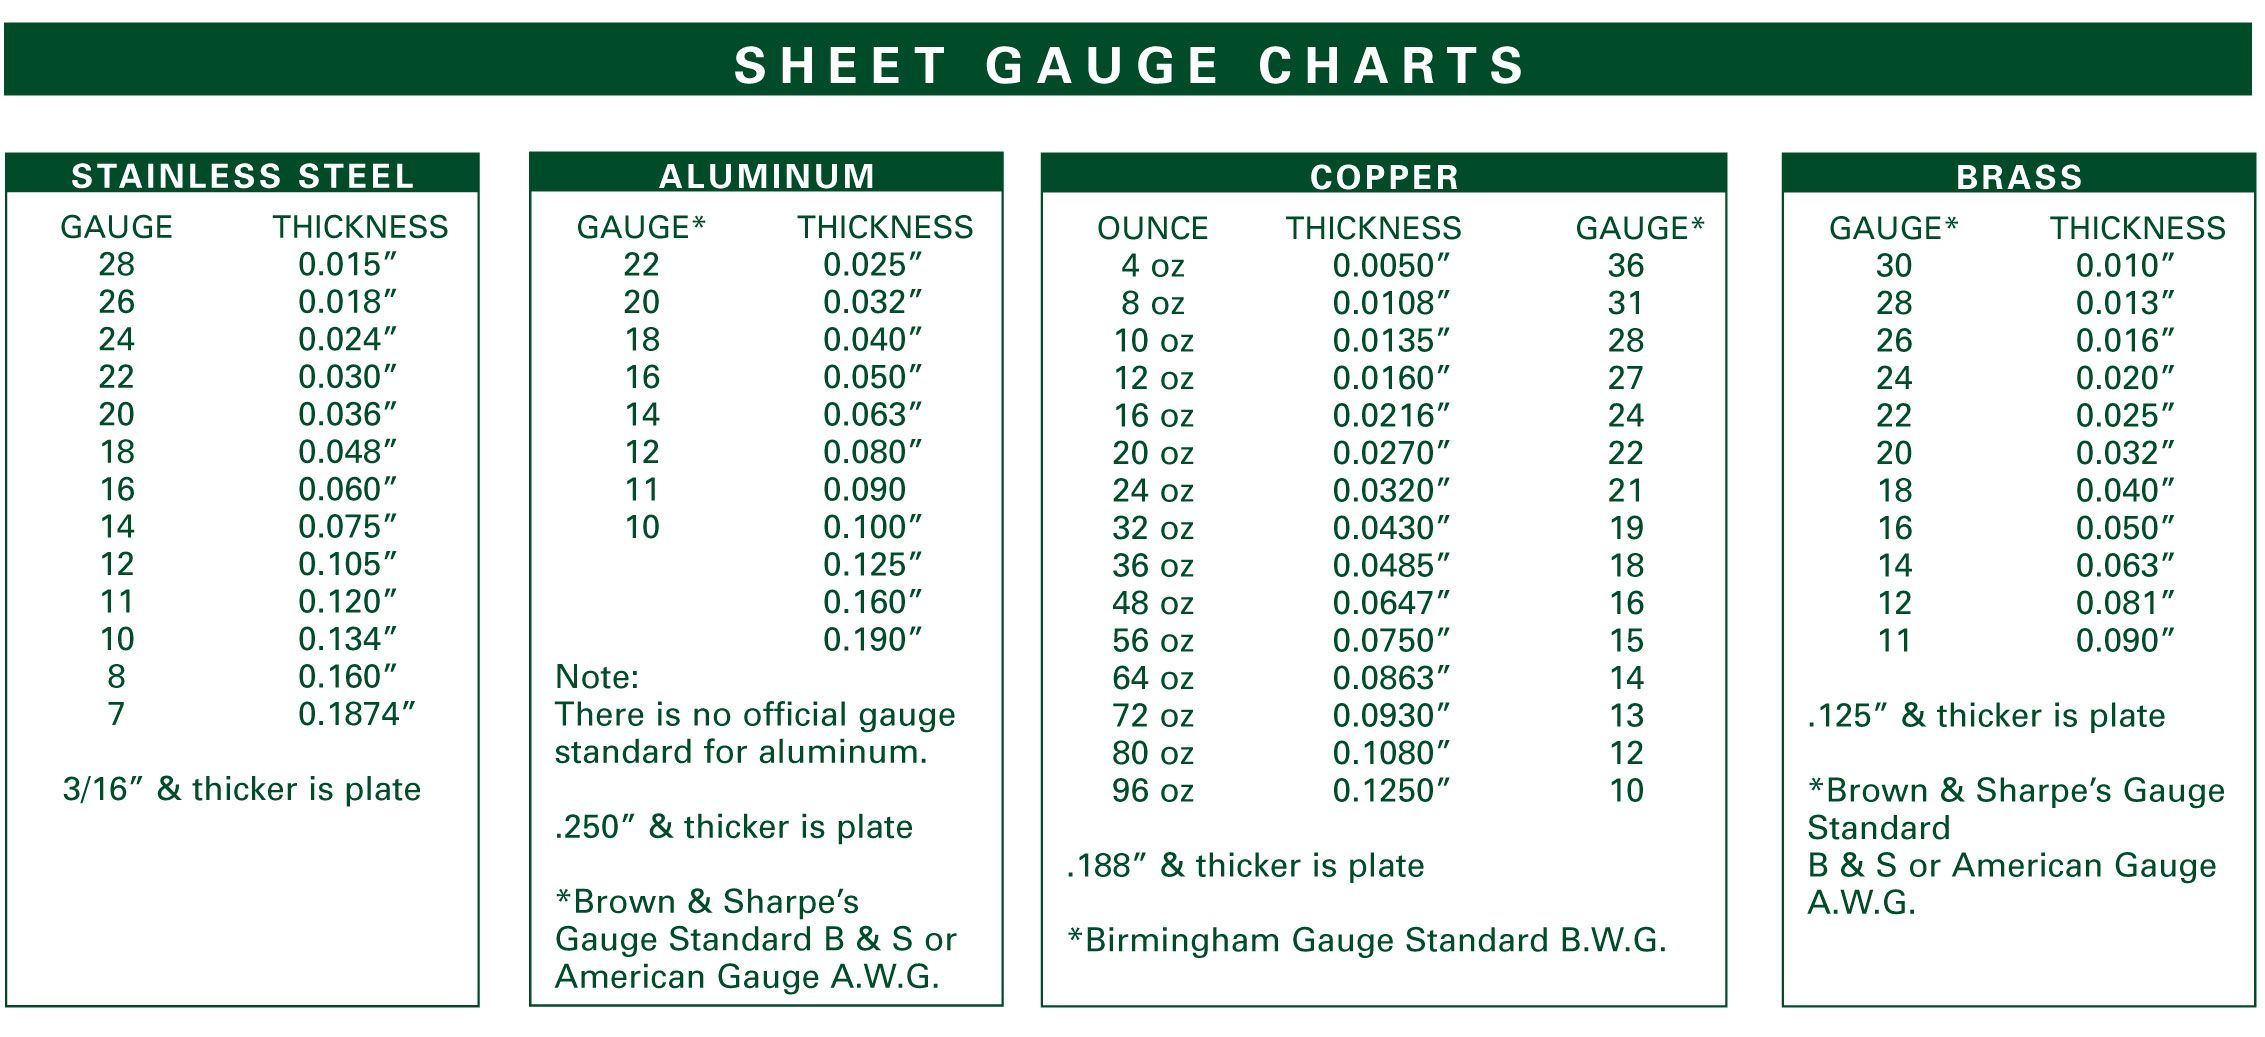 Sheet Gauge Chart 4 Jpg 2265 1037 Sheet Metal Gauge Metal Gauge Steel Sheet Metal